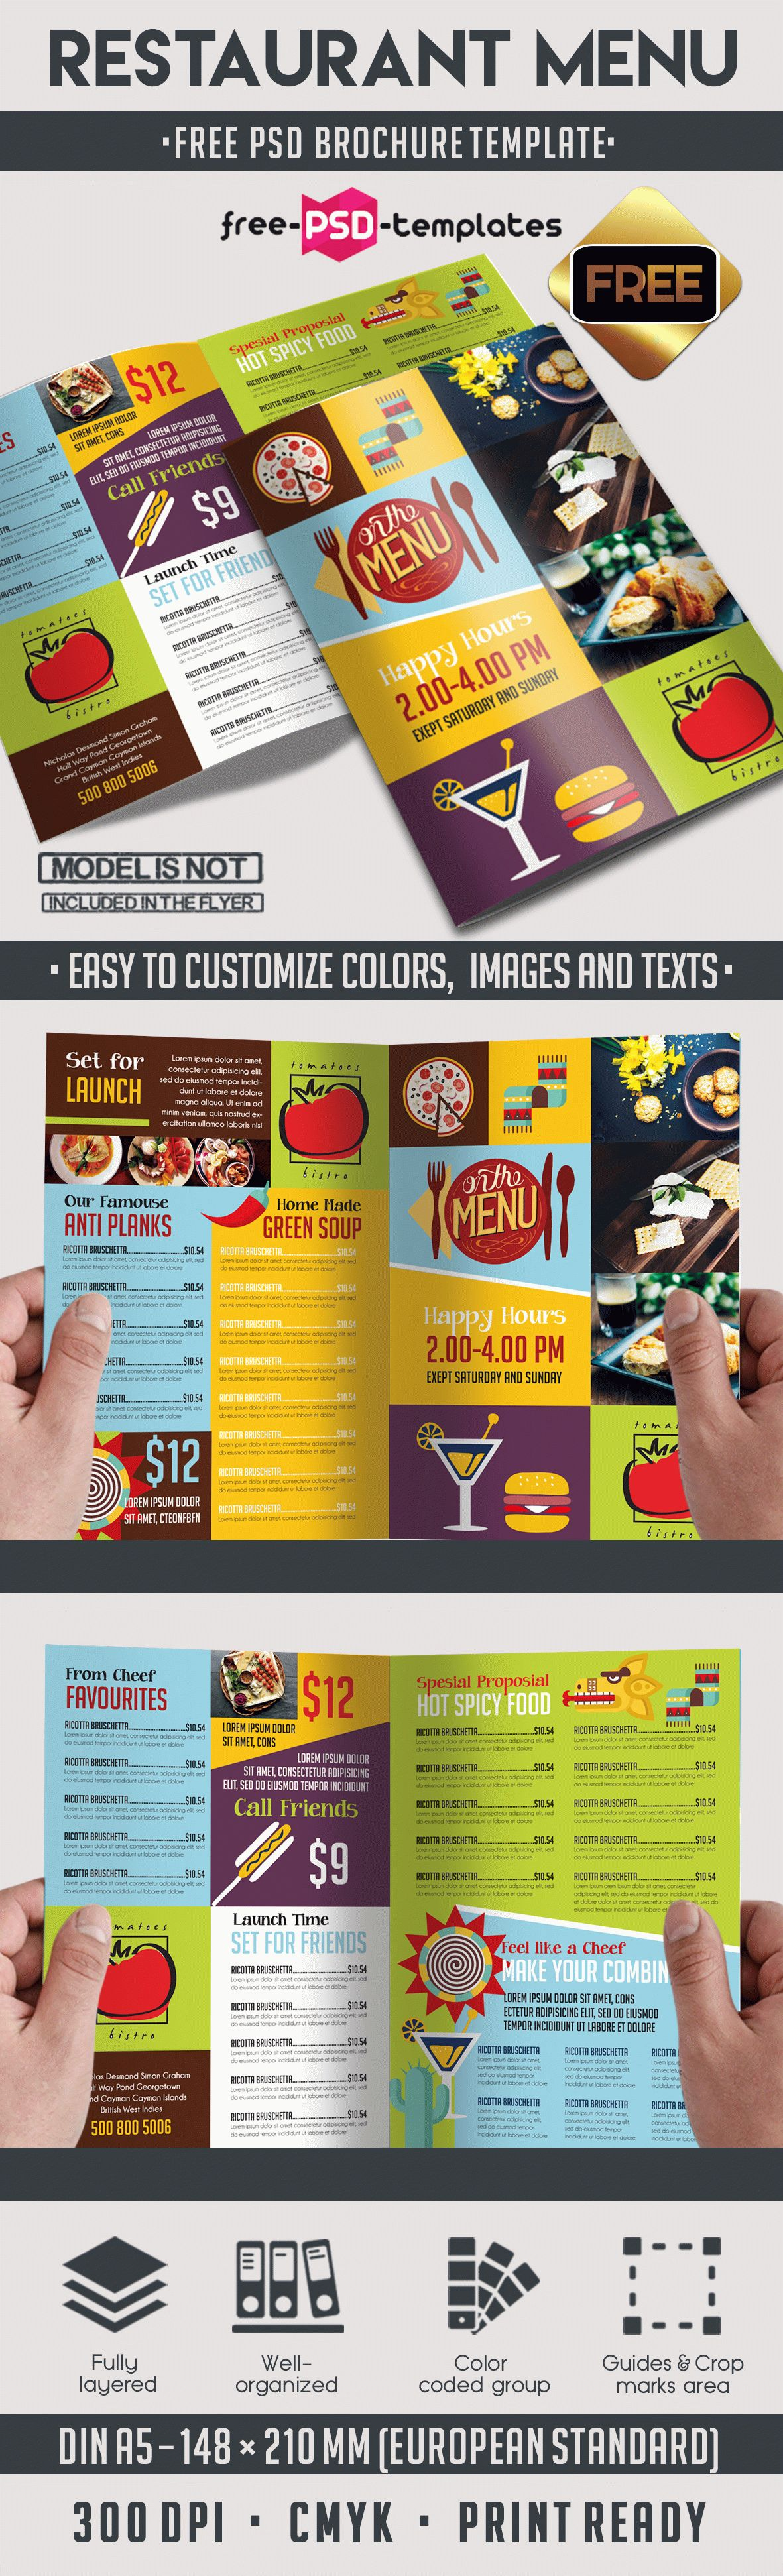 Menu free psd bi fold psd brochure template free psd for 3 fold brochure template psd free download